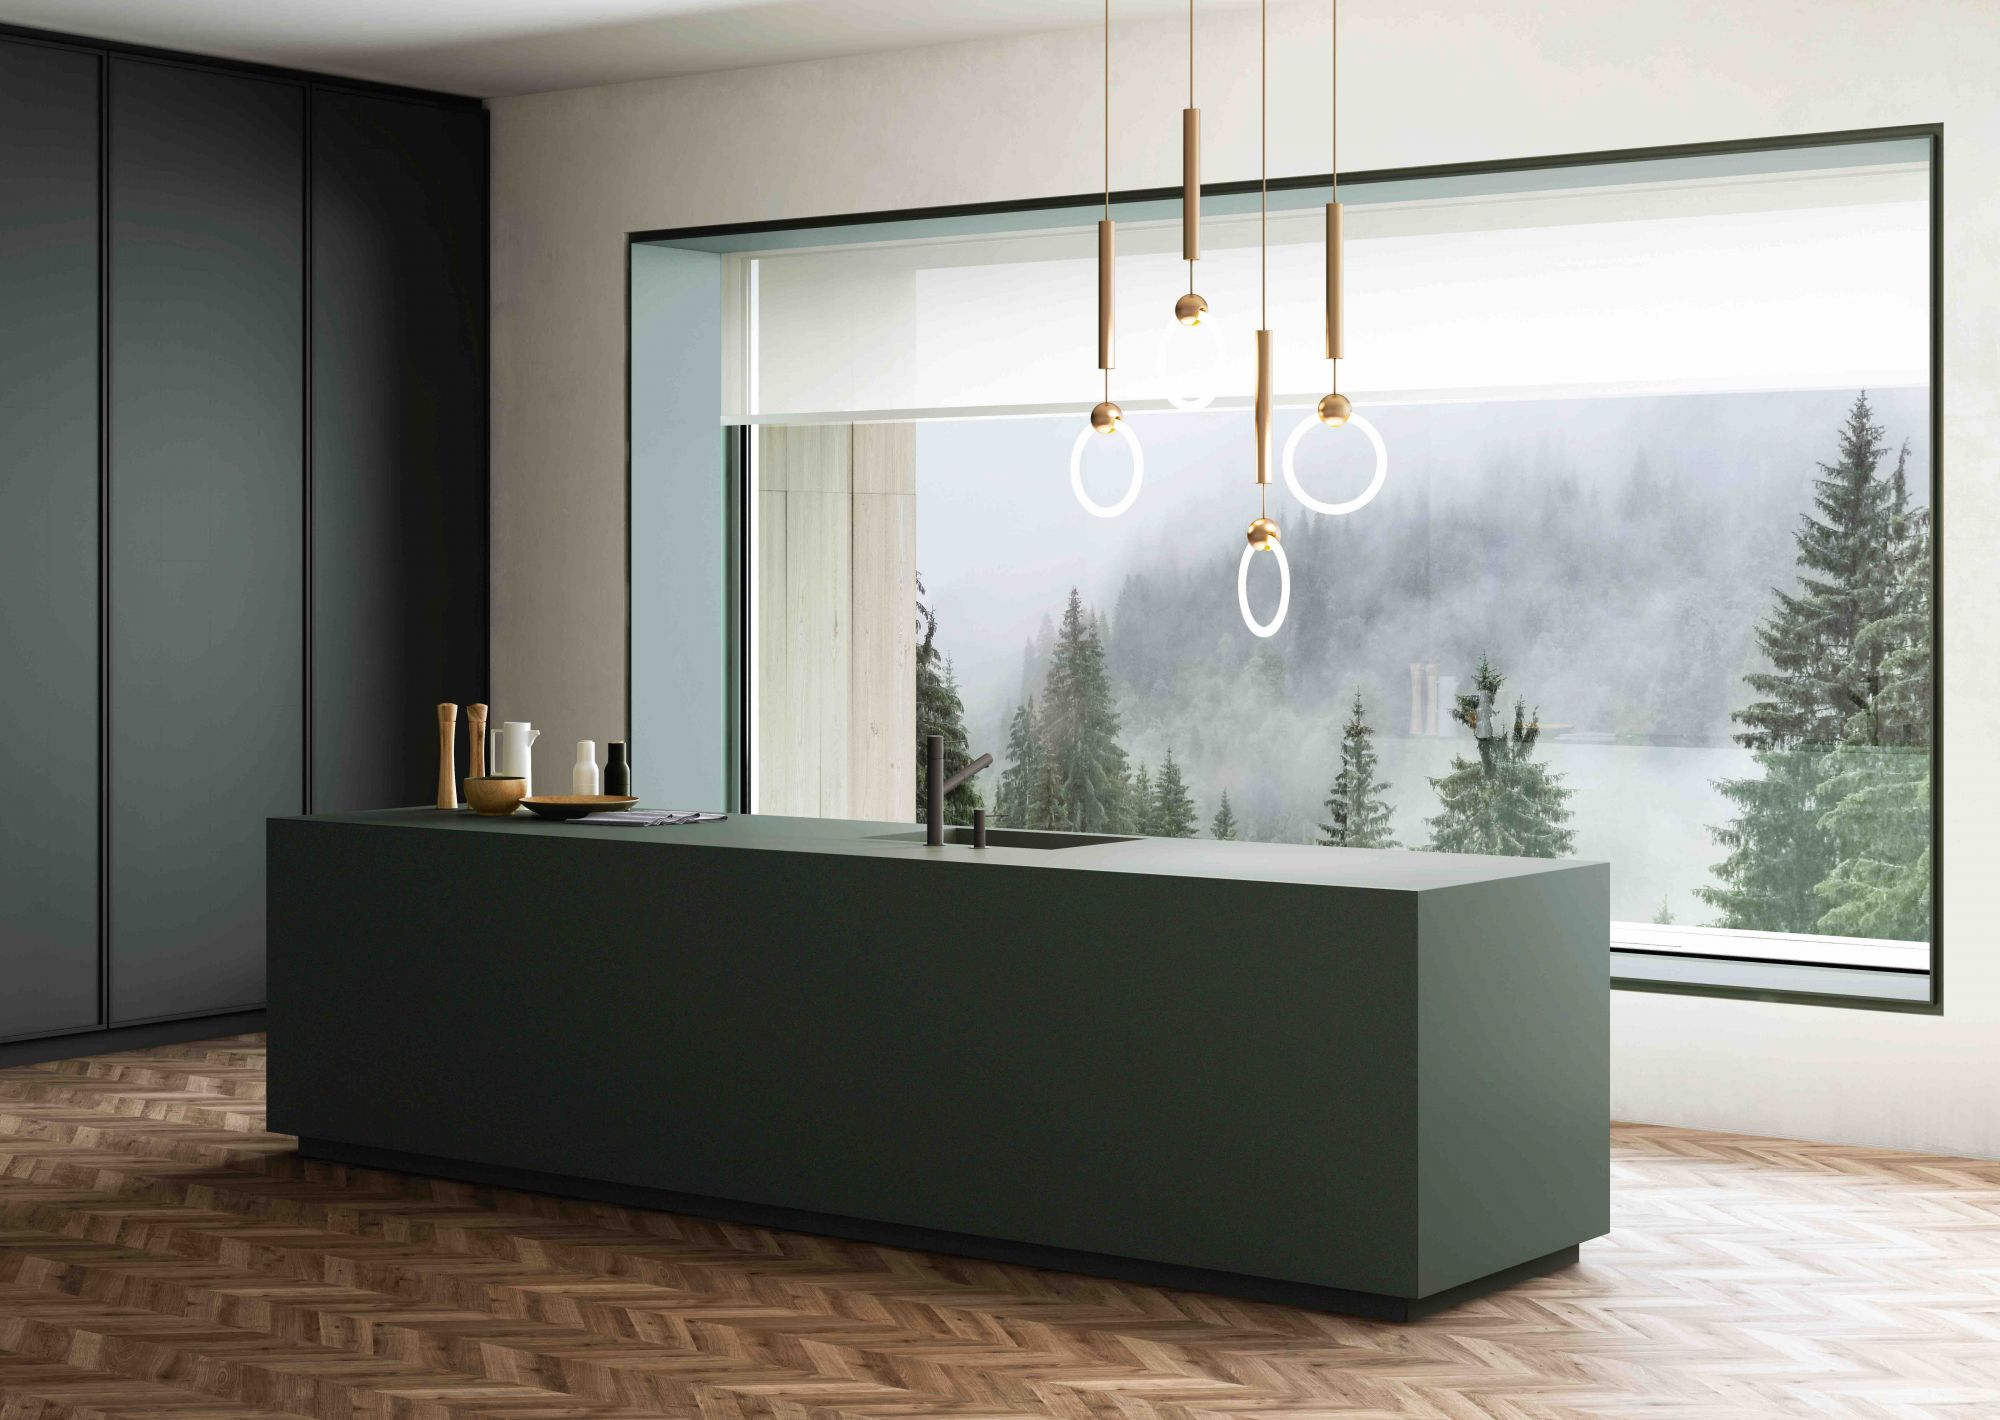 Available at Cosentino, the Dekton Feroe collection features a verdant colour inspired by nature